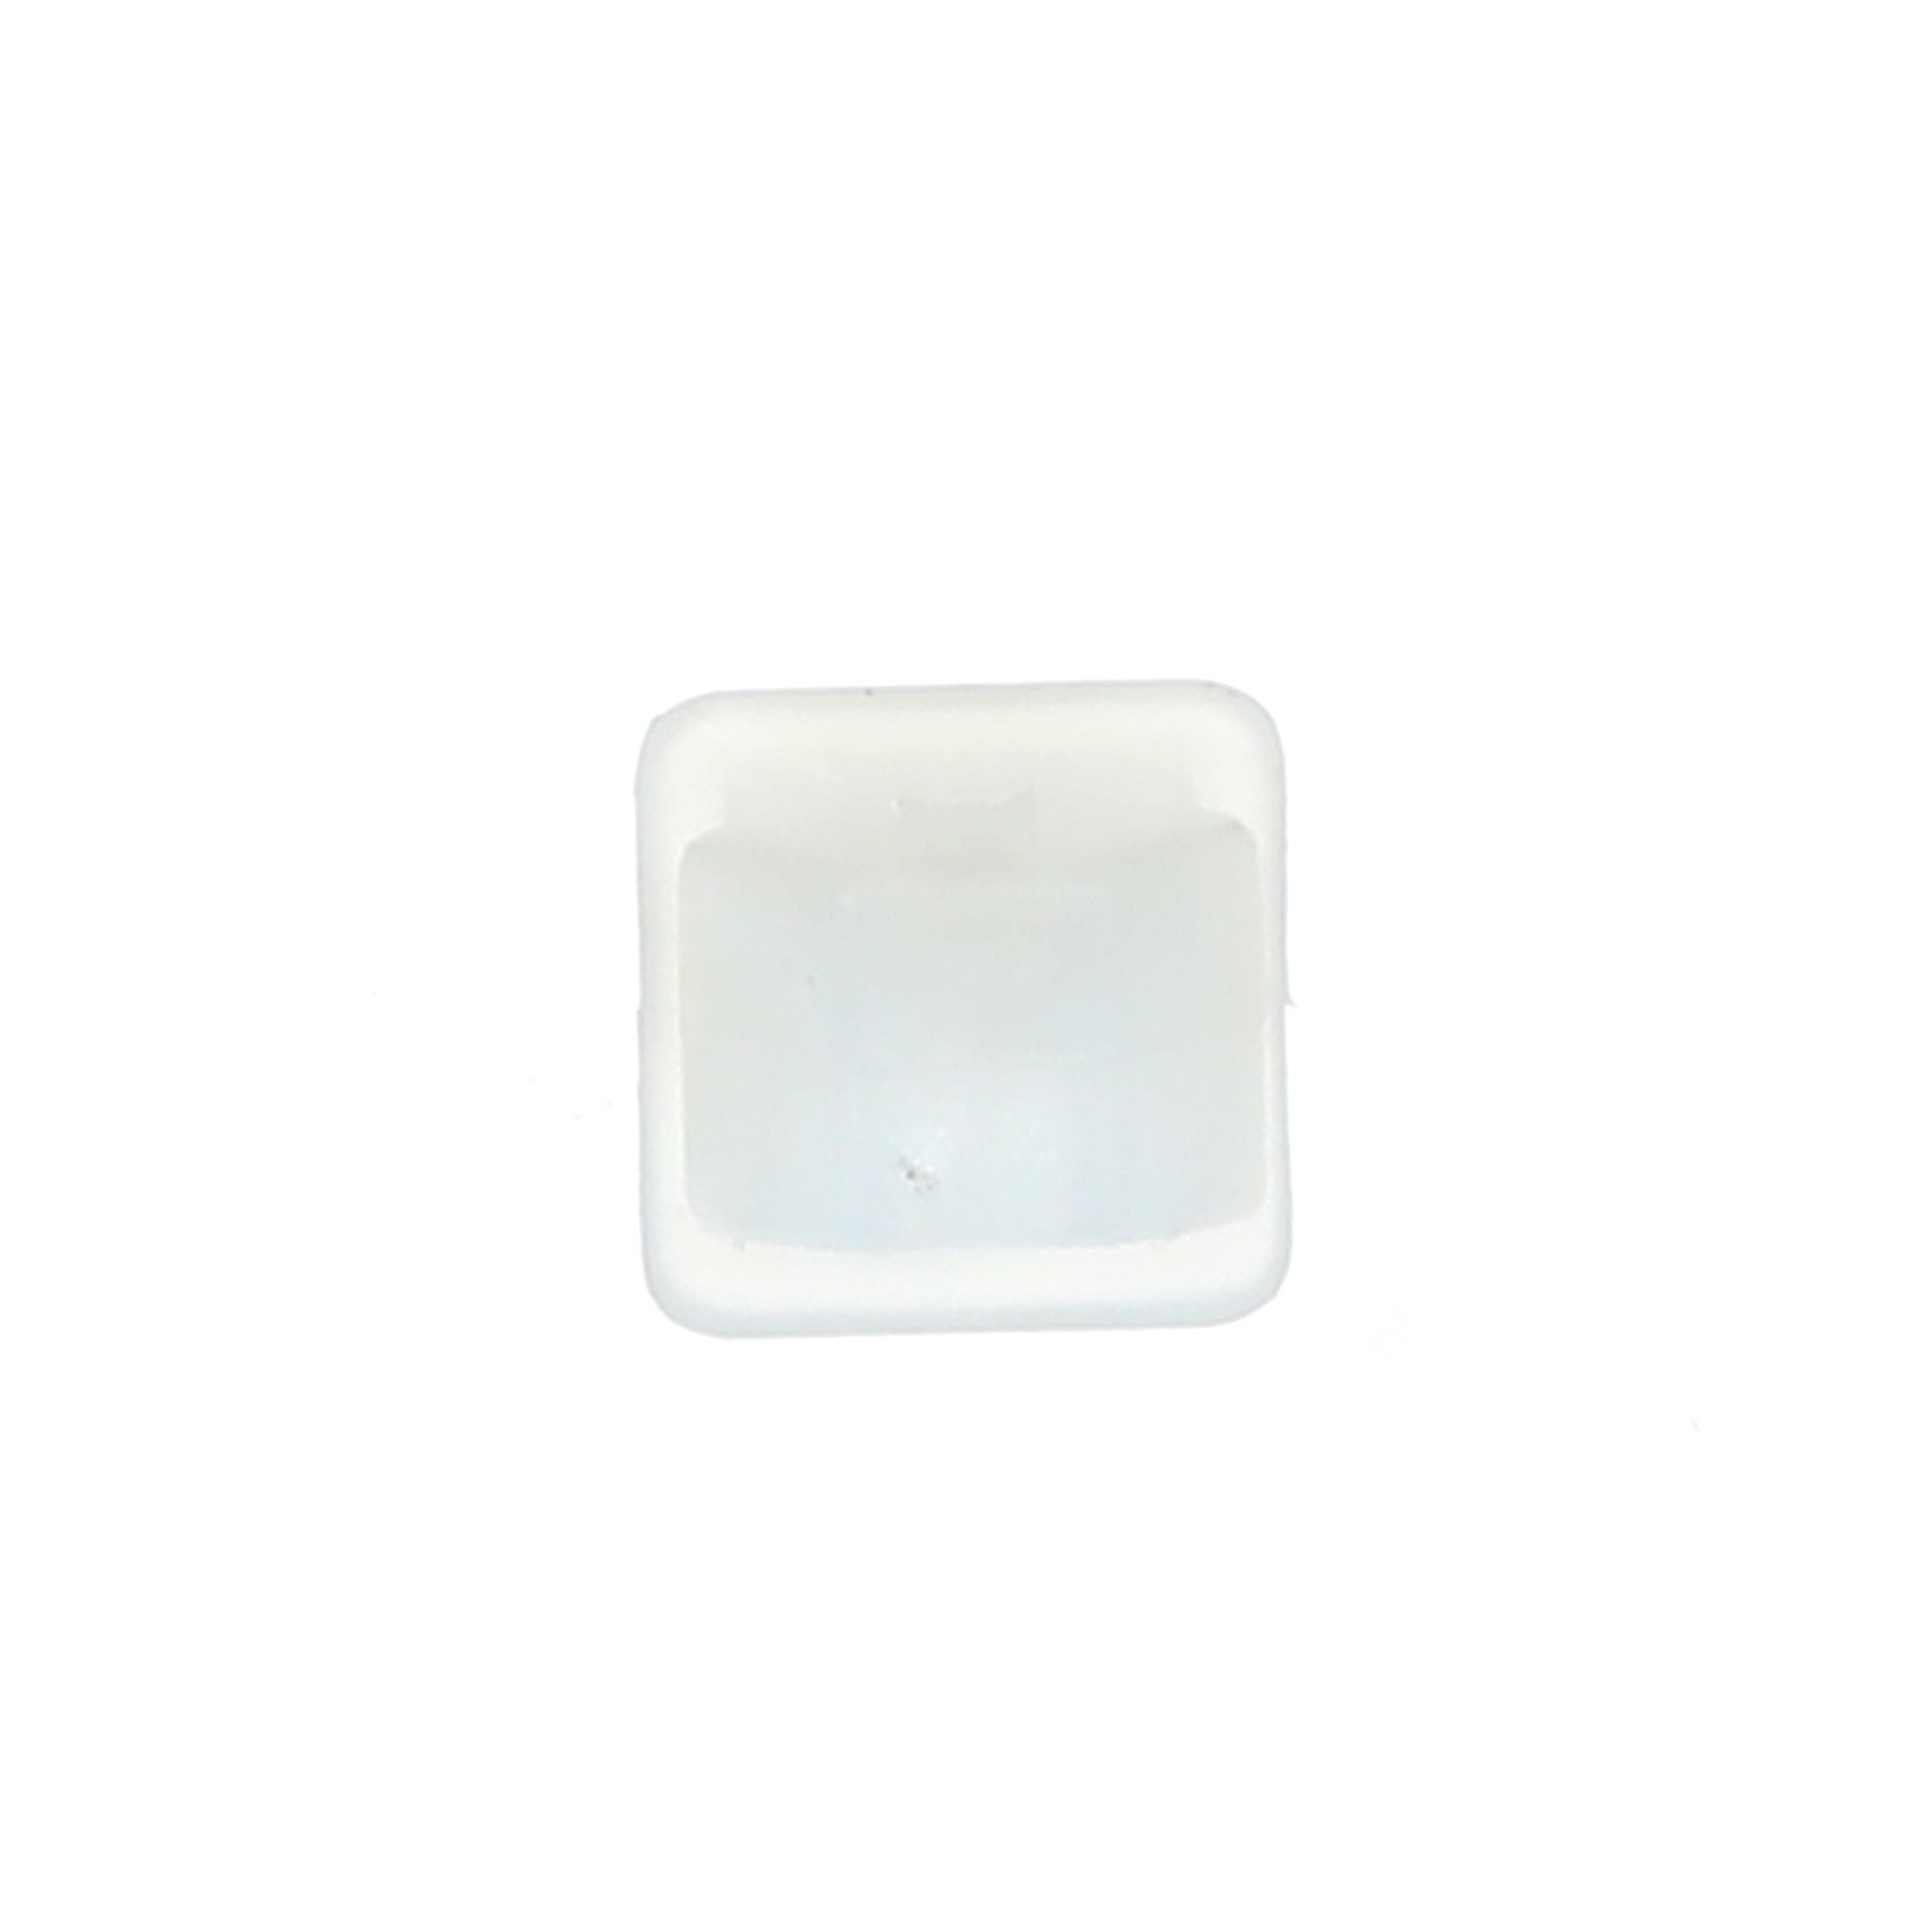 PLASTIC COVER CLIP (MALE)